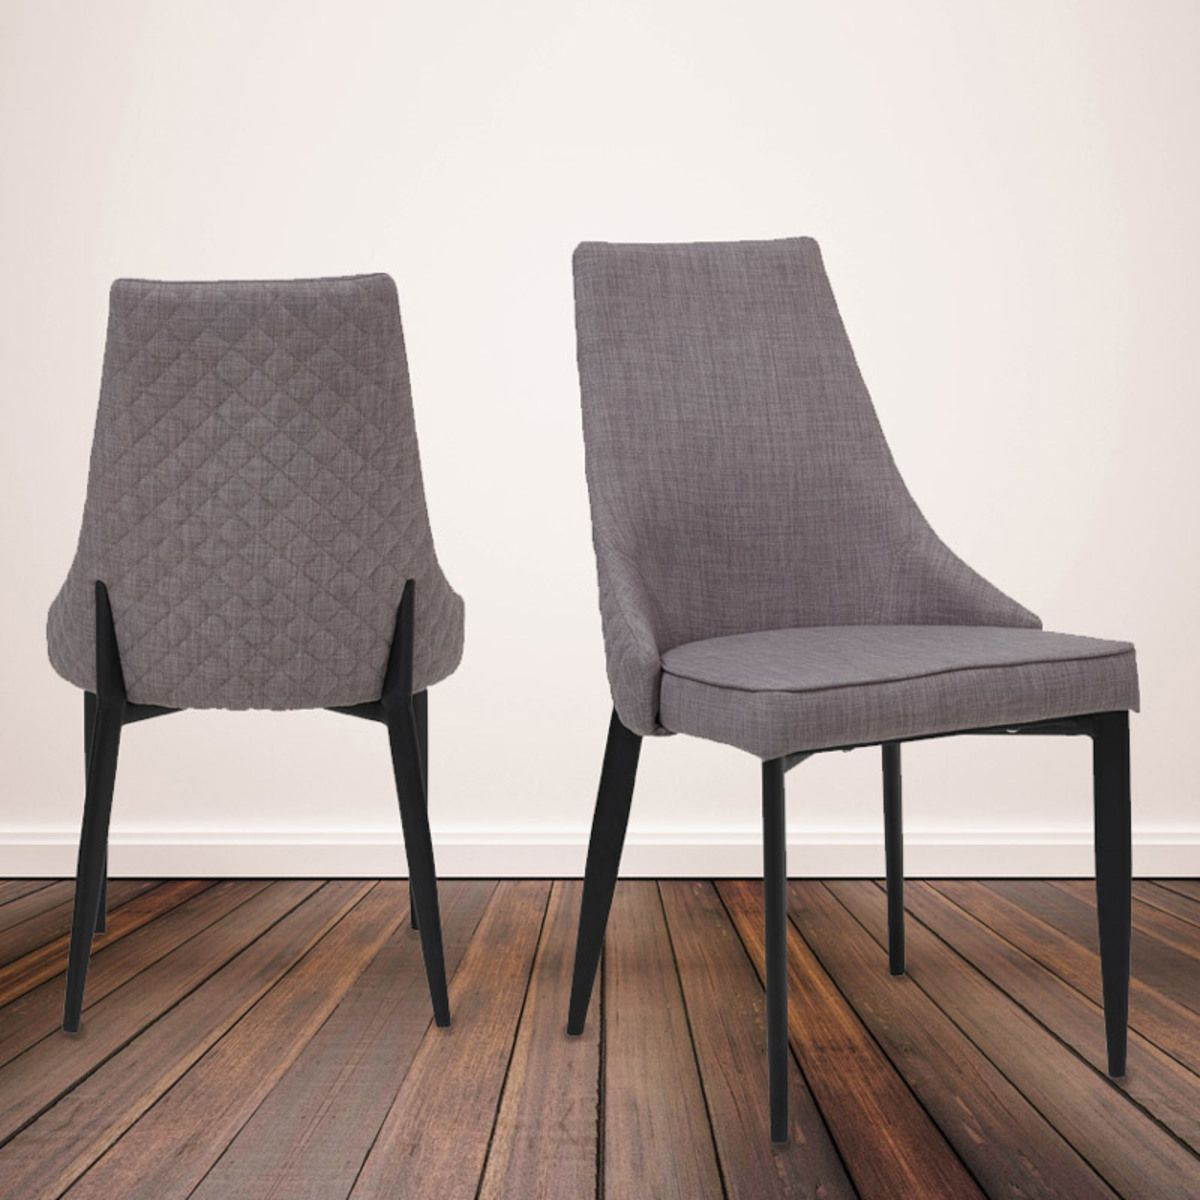 fabric dining chairs uk korda chair accessories parq quilted back grey 4 pack costco